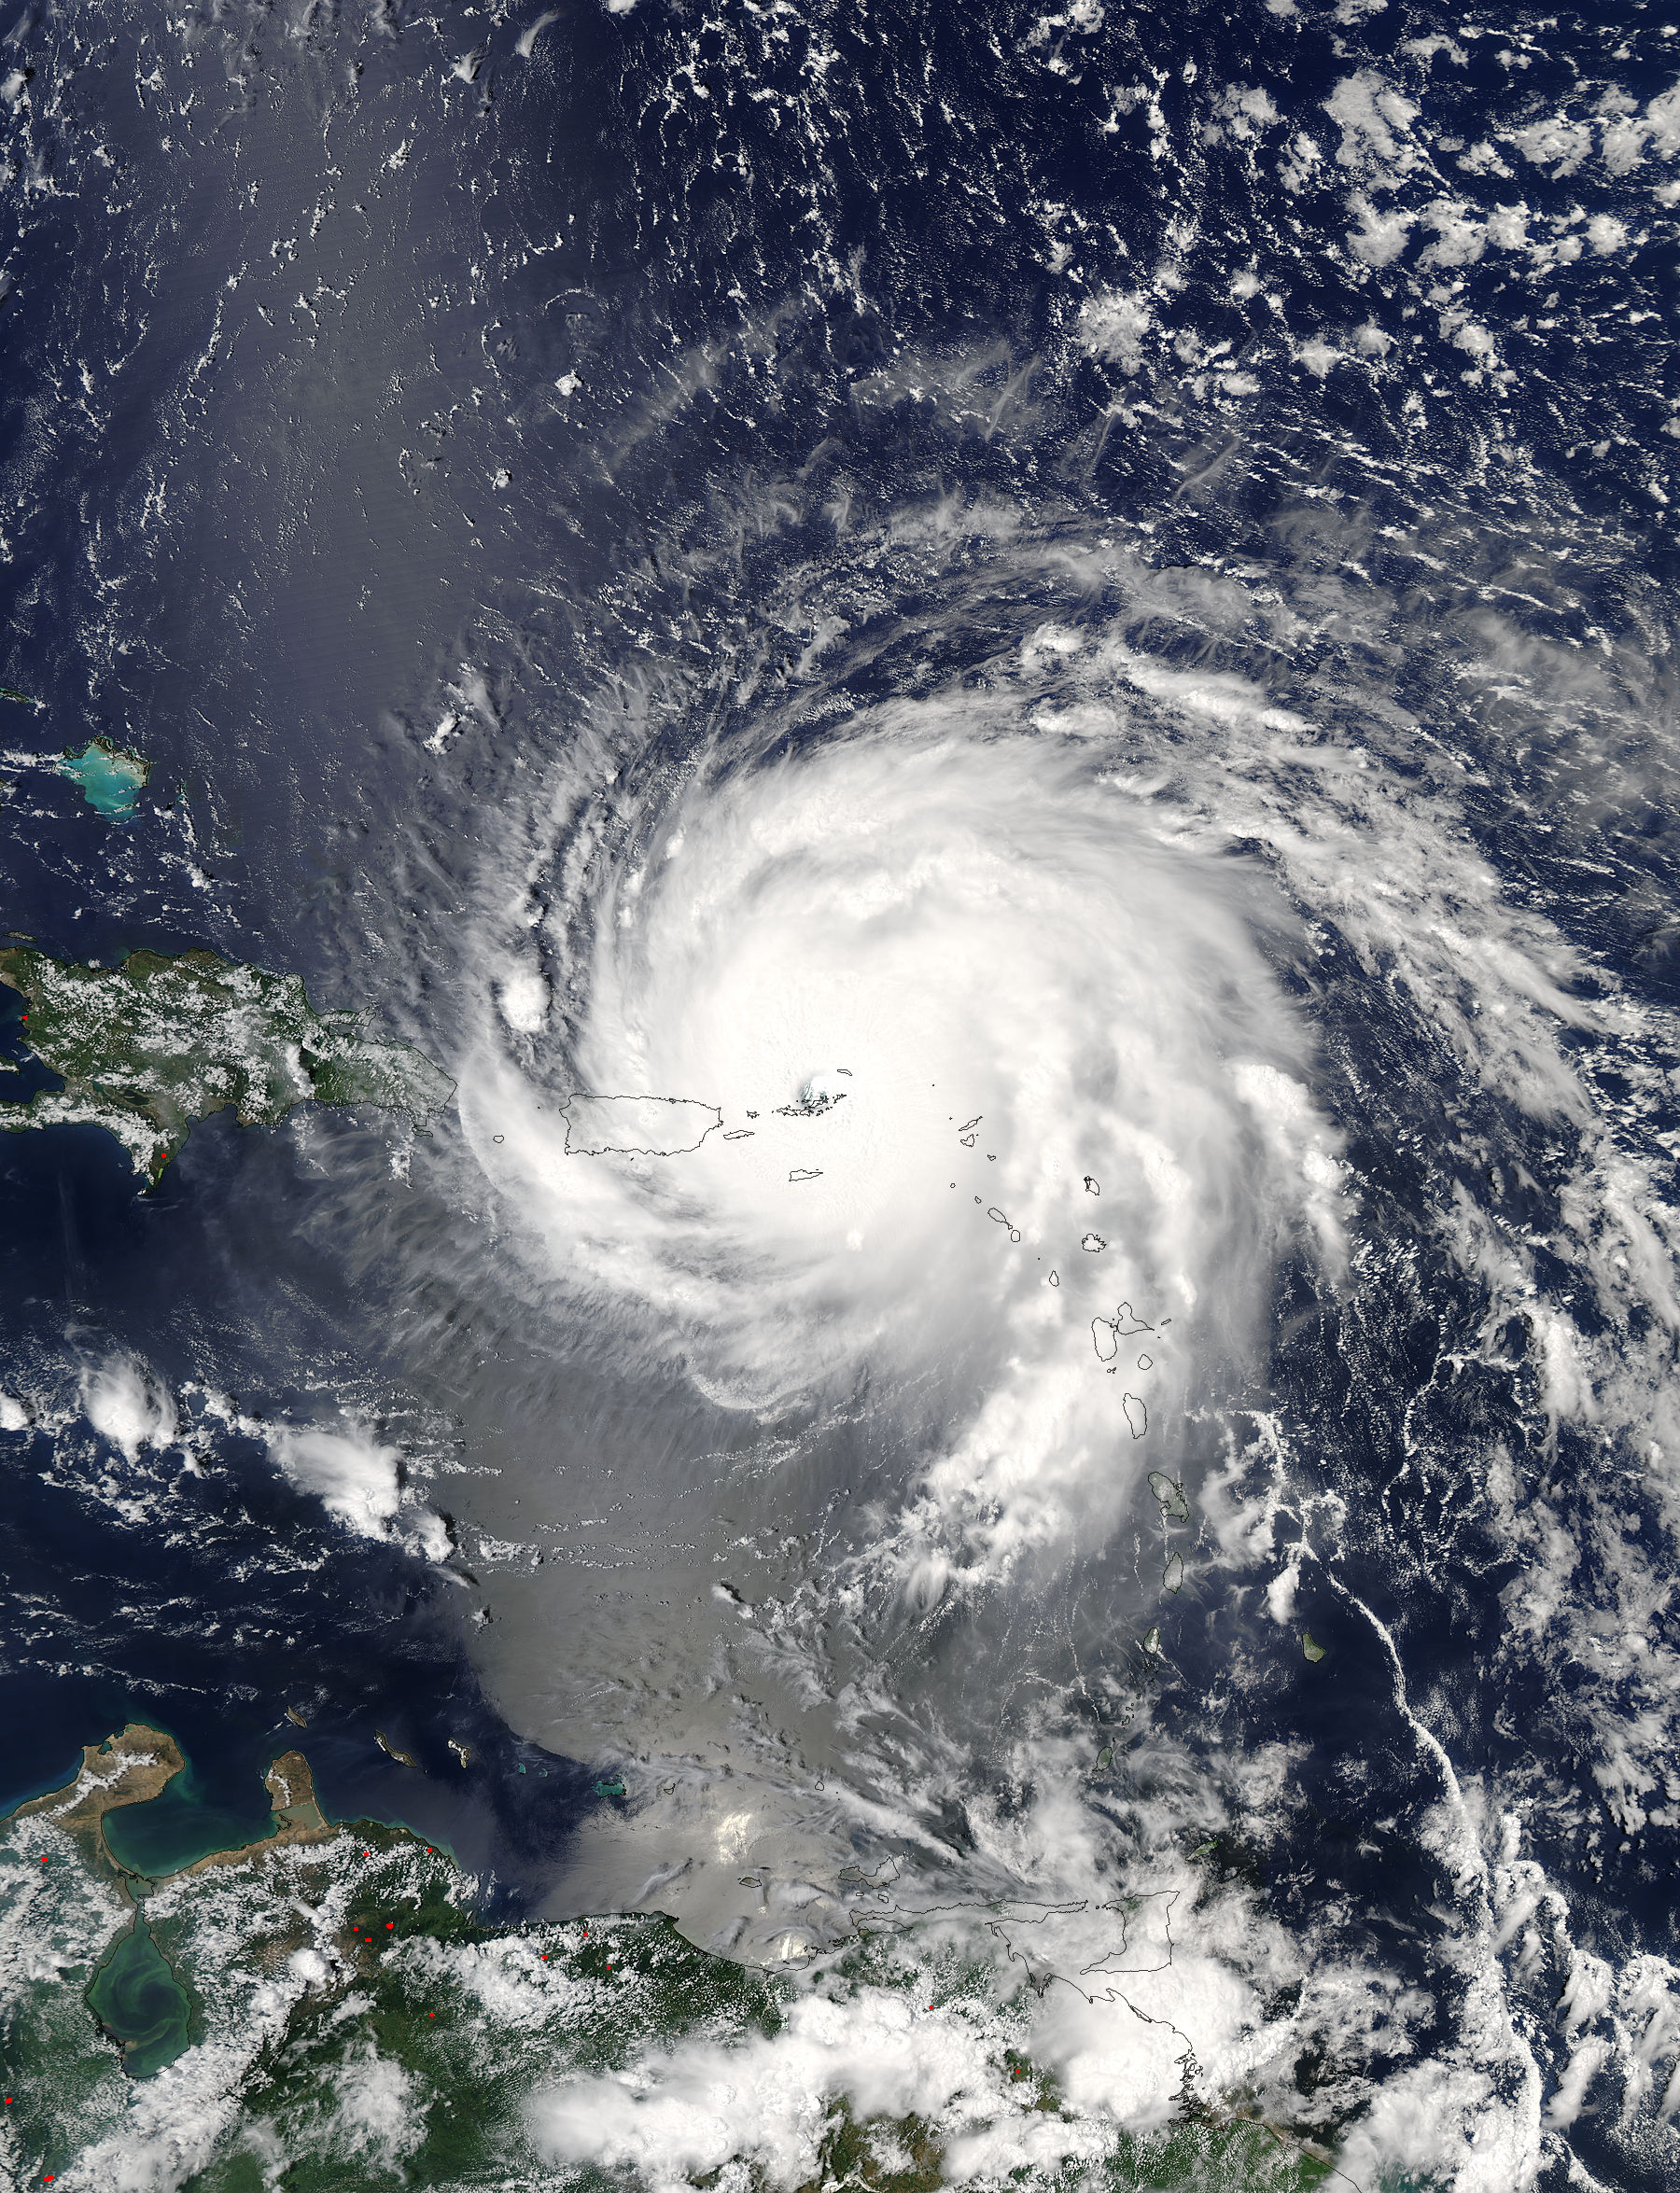 On Sept. 6 at 1:45 p.m. EDT (1745 UTC) the Moderate Resolution Imaging Spectroradiometer or MODIS instrument aboard NASA's Aqua satellite captured a visible-light image of Hurricane Irma over the Leeward Islands and Puerto Rico. Credits: NASA Goddard MODIS Rapid Response Team